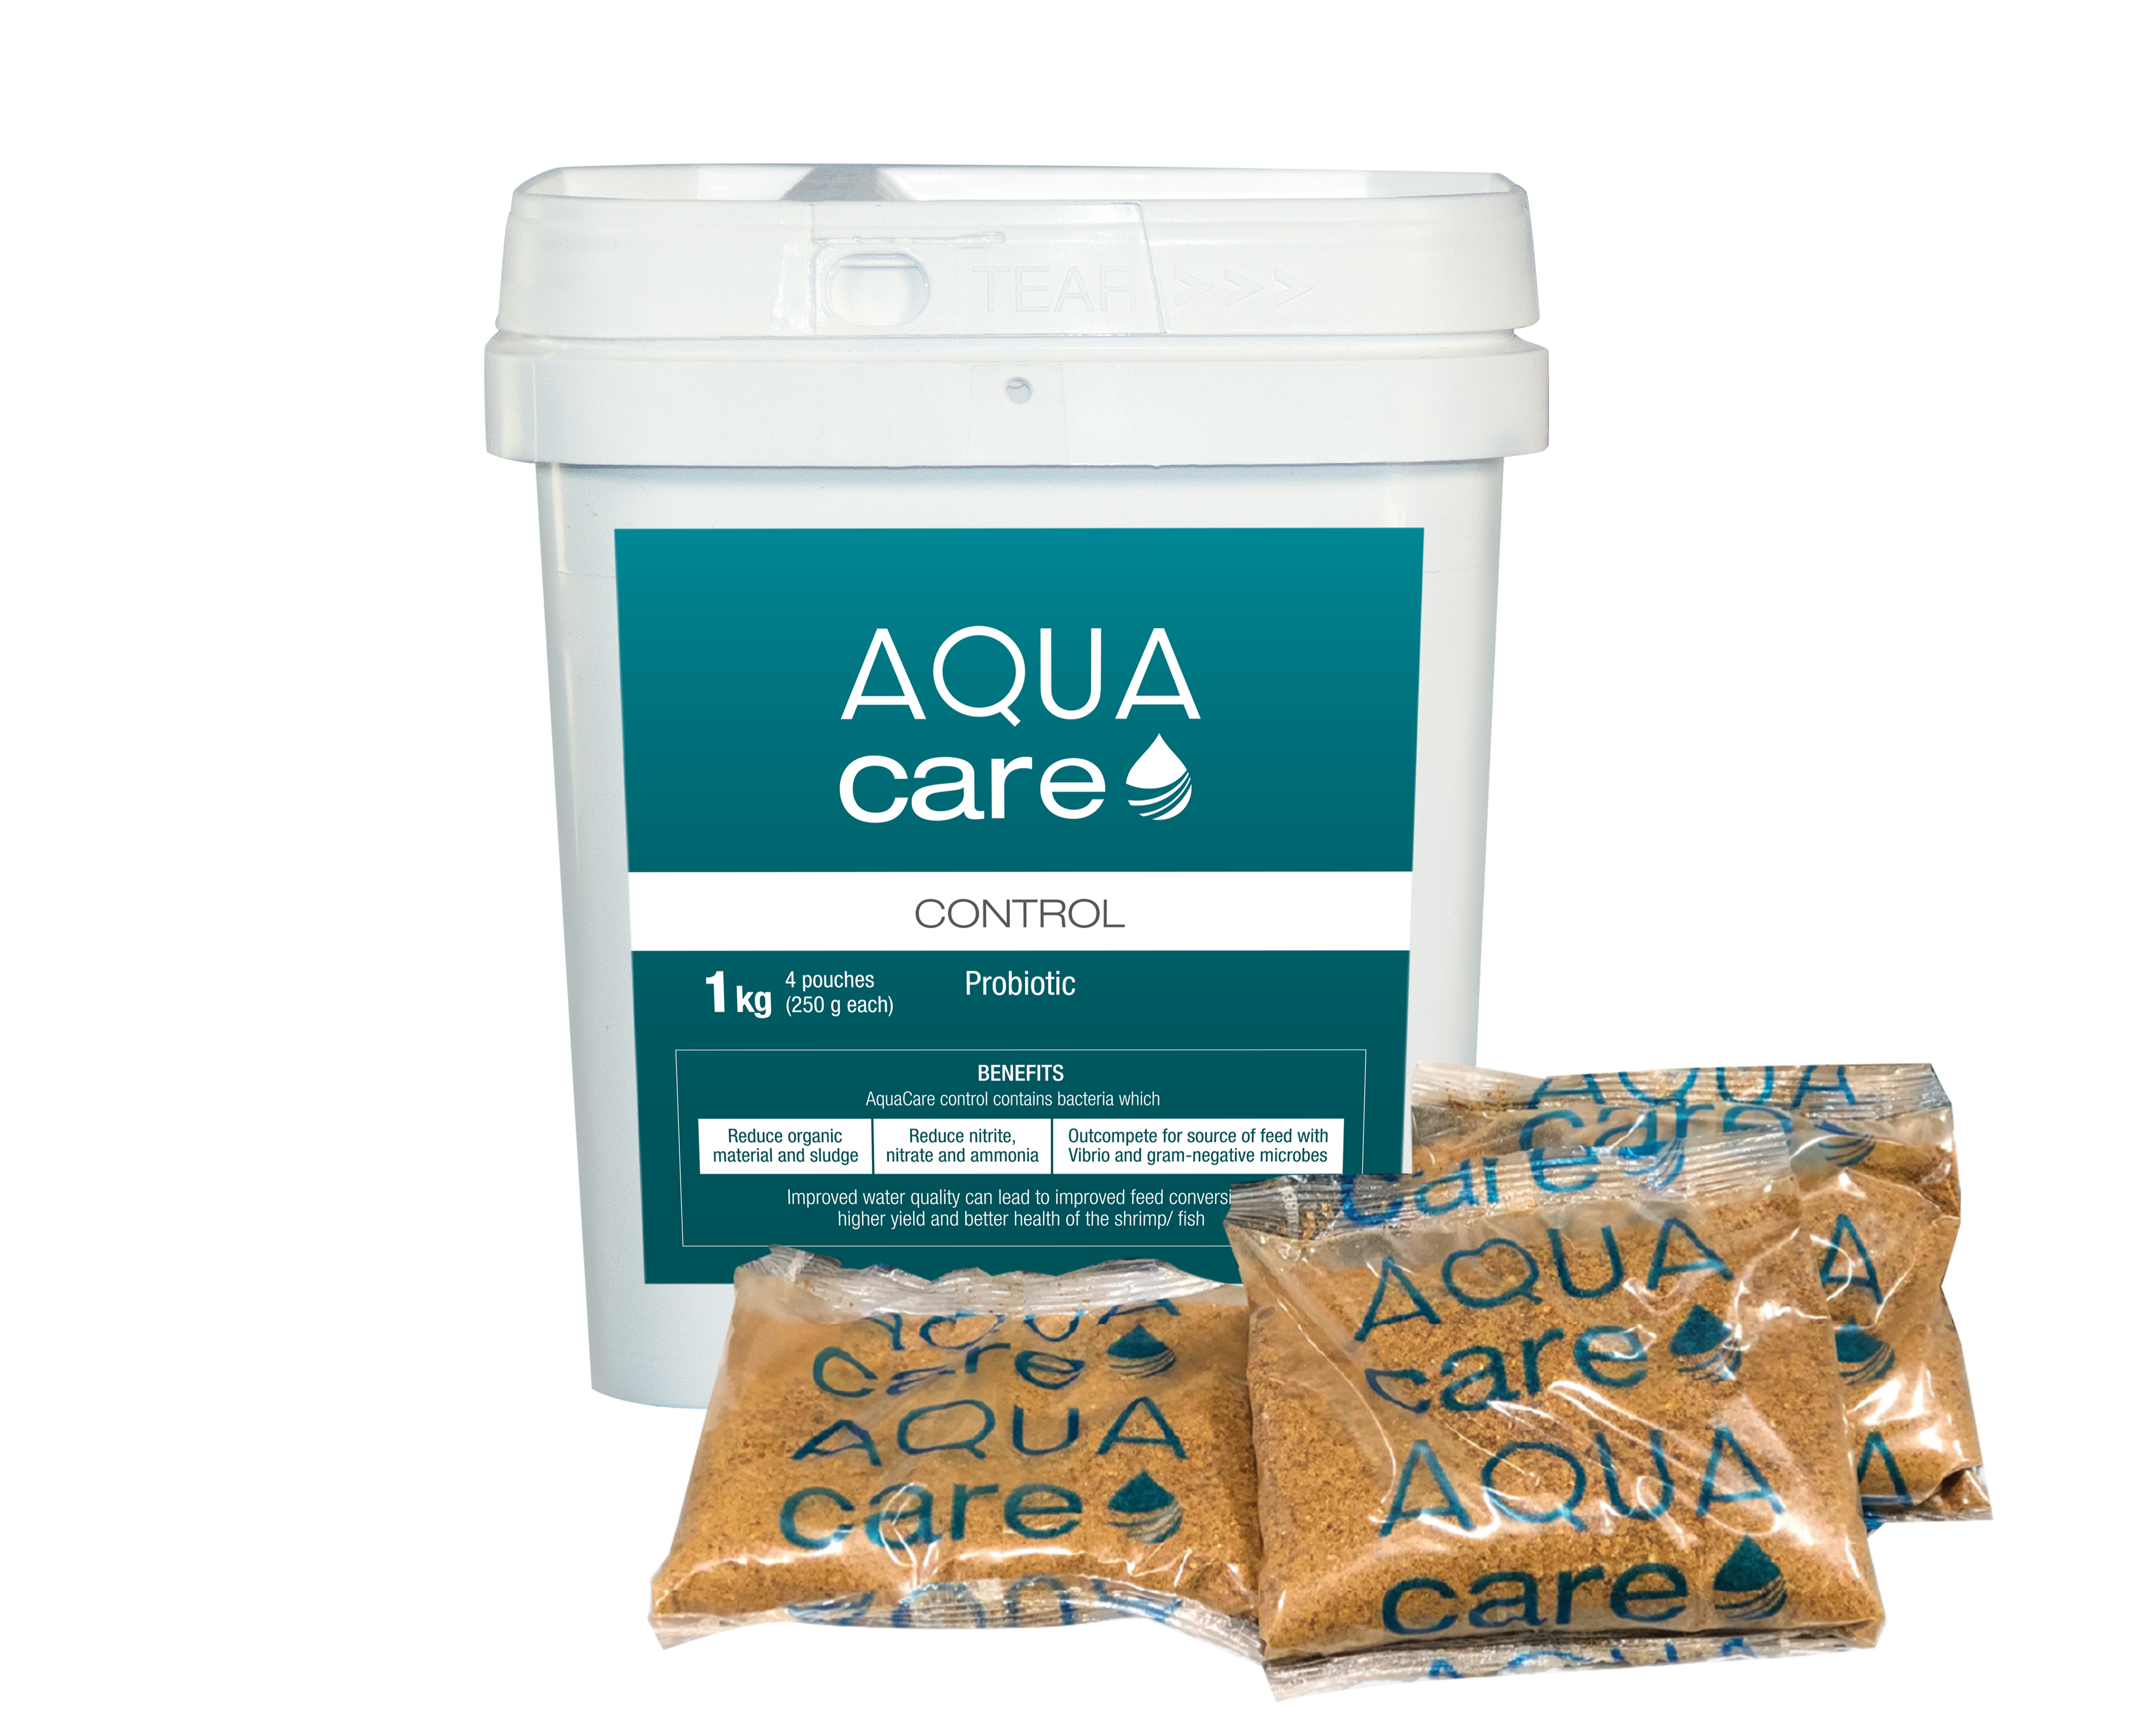 Skretting India unveils AquaCare products for shrimp and fish farmers